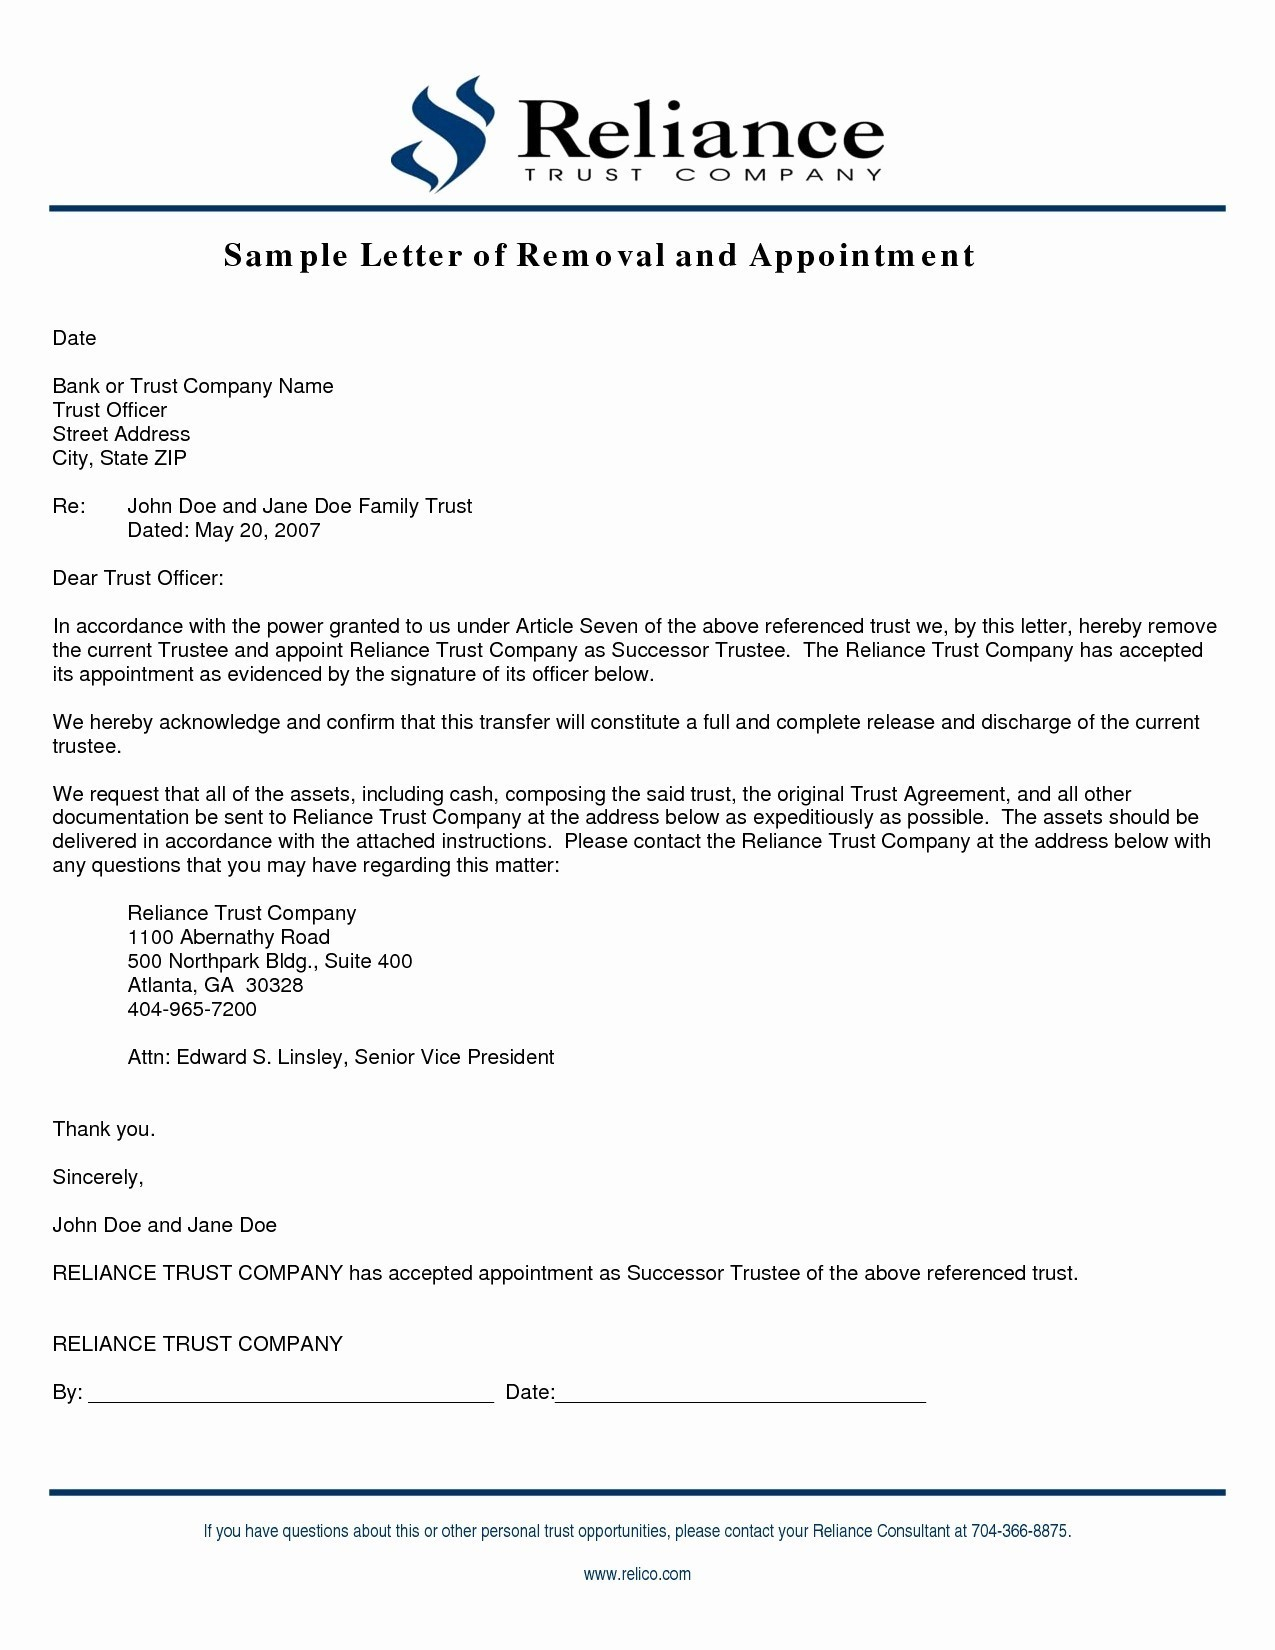 Job Offer Letter Template Pdf - Cpt Job Fer Letter Sample Inspirationa Job Fer Letter Template Pdf